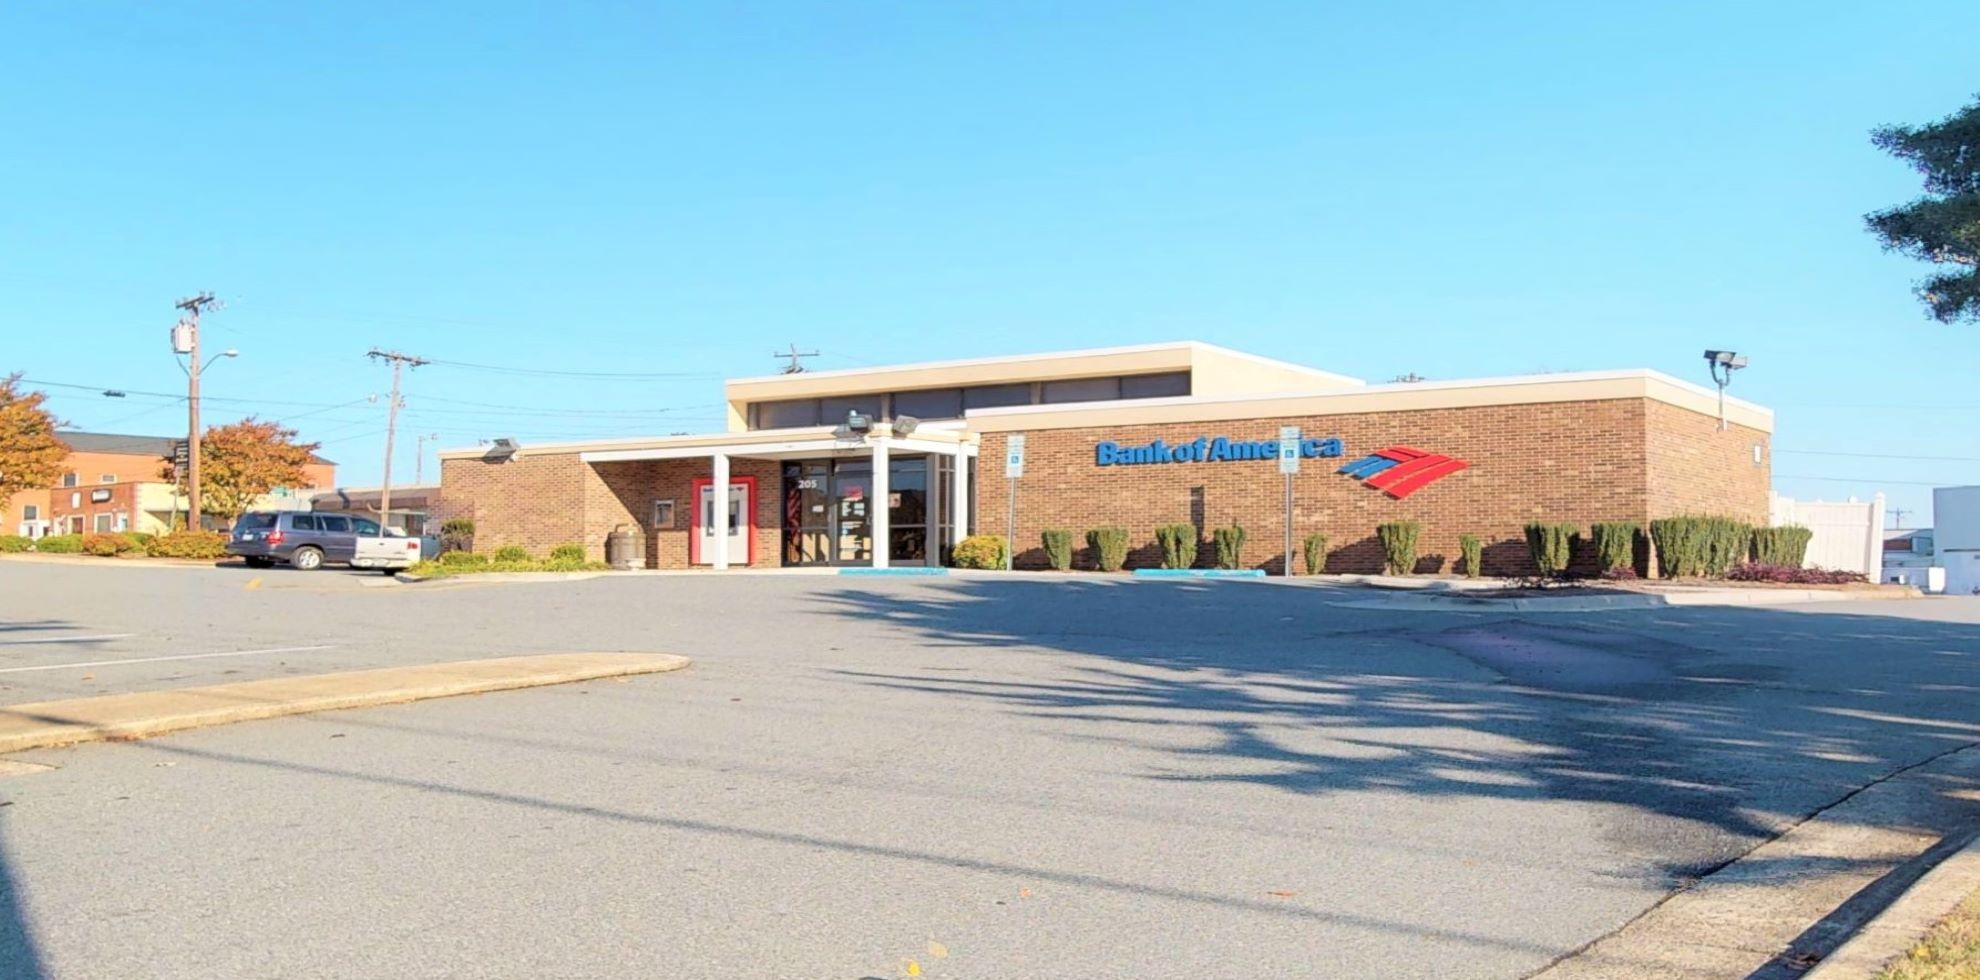 Bank of America financial center with drive-thru ATM and teller | 205 E Mountain St, Kernersville, NC 27284